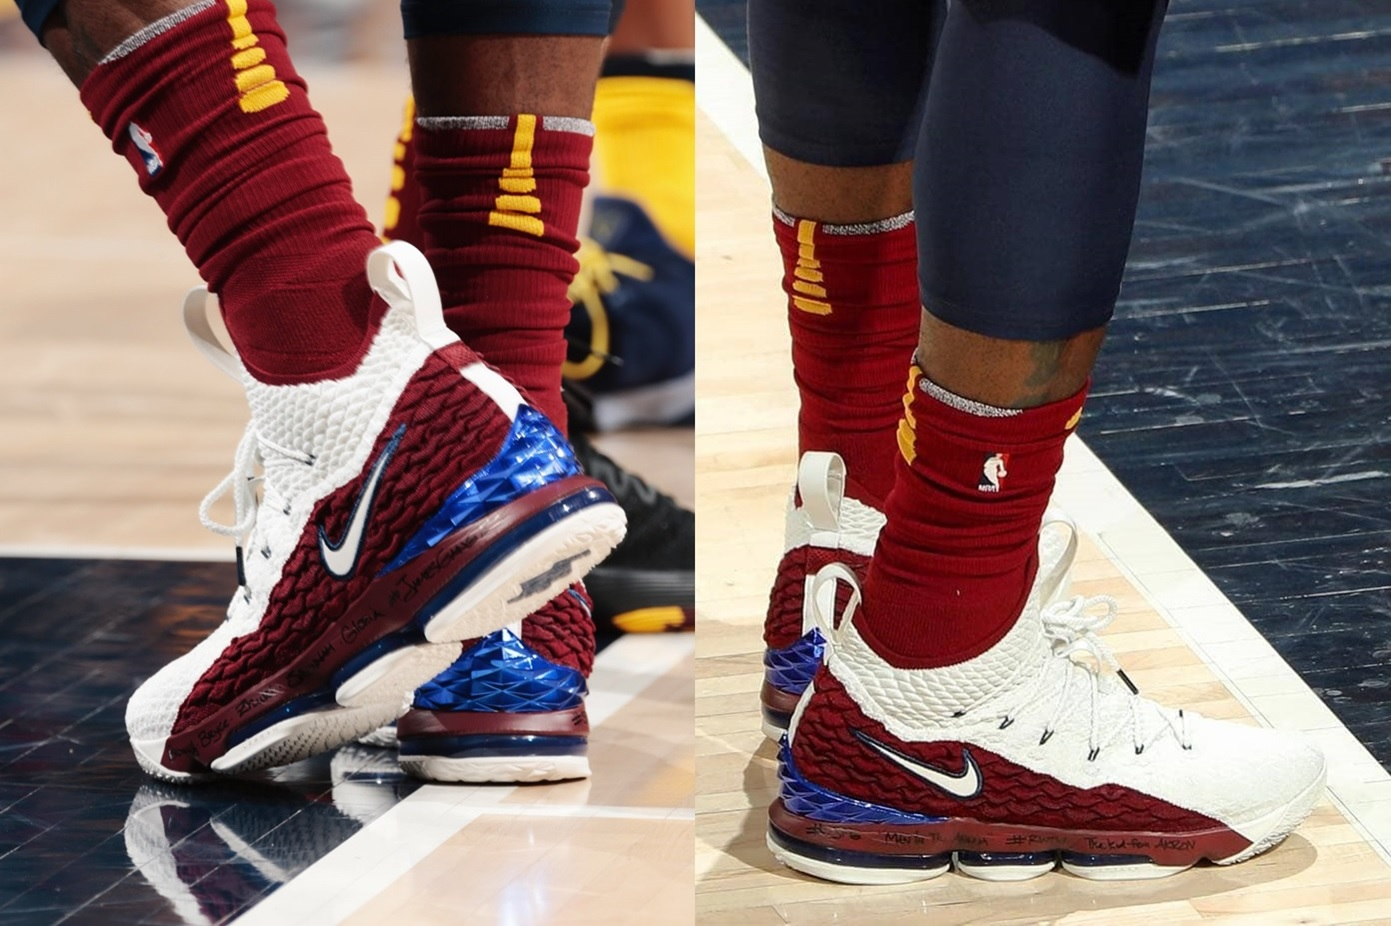 ecb1abbb1dde ... promo code for nike lebron 15 air zoom generation first game 4 91896  1c475